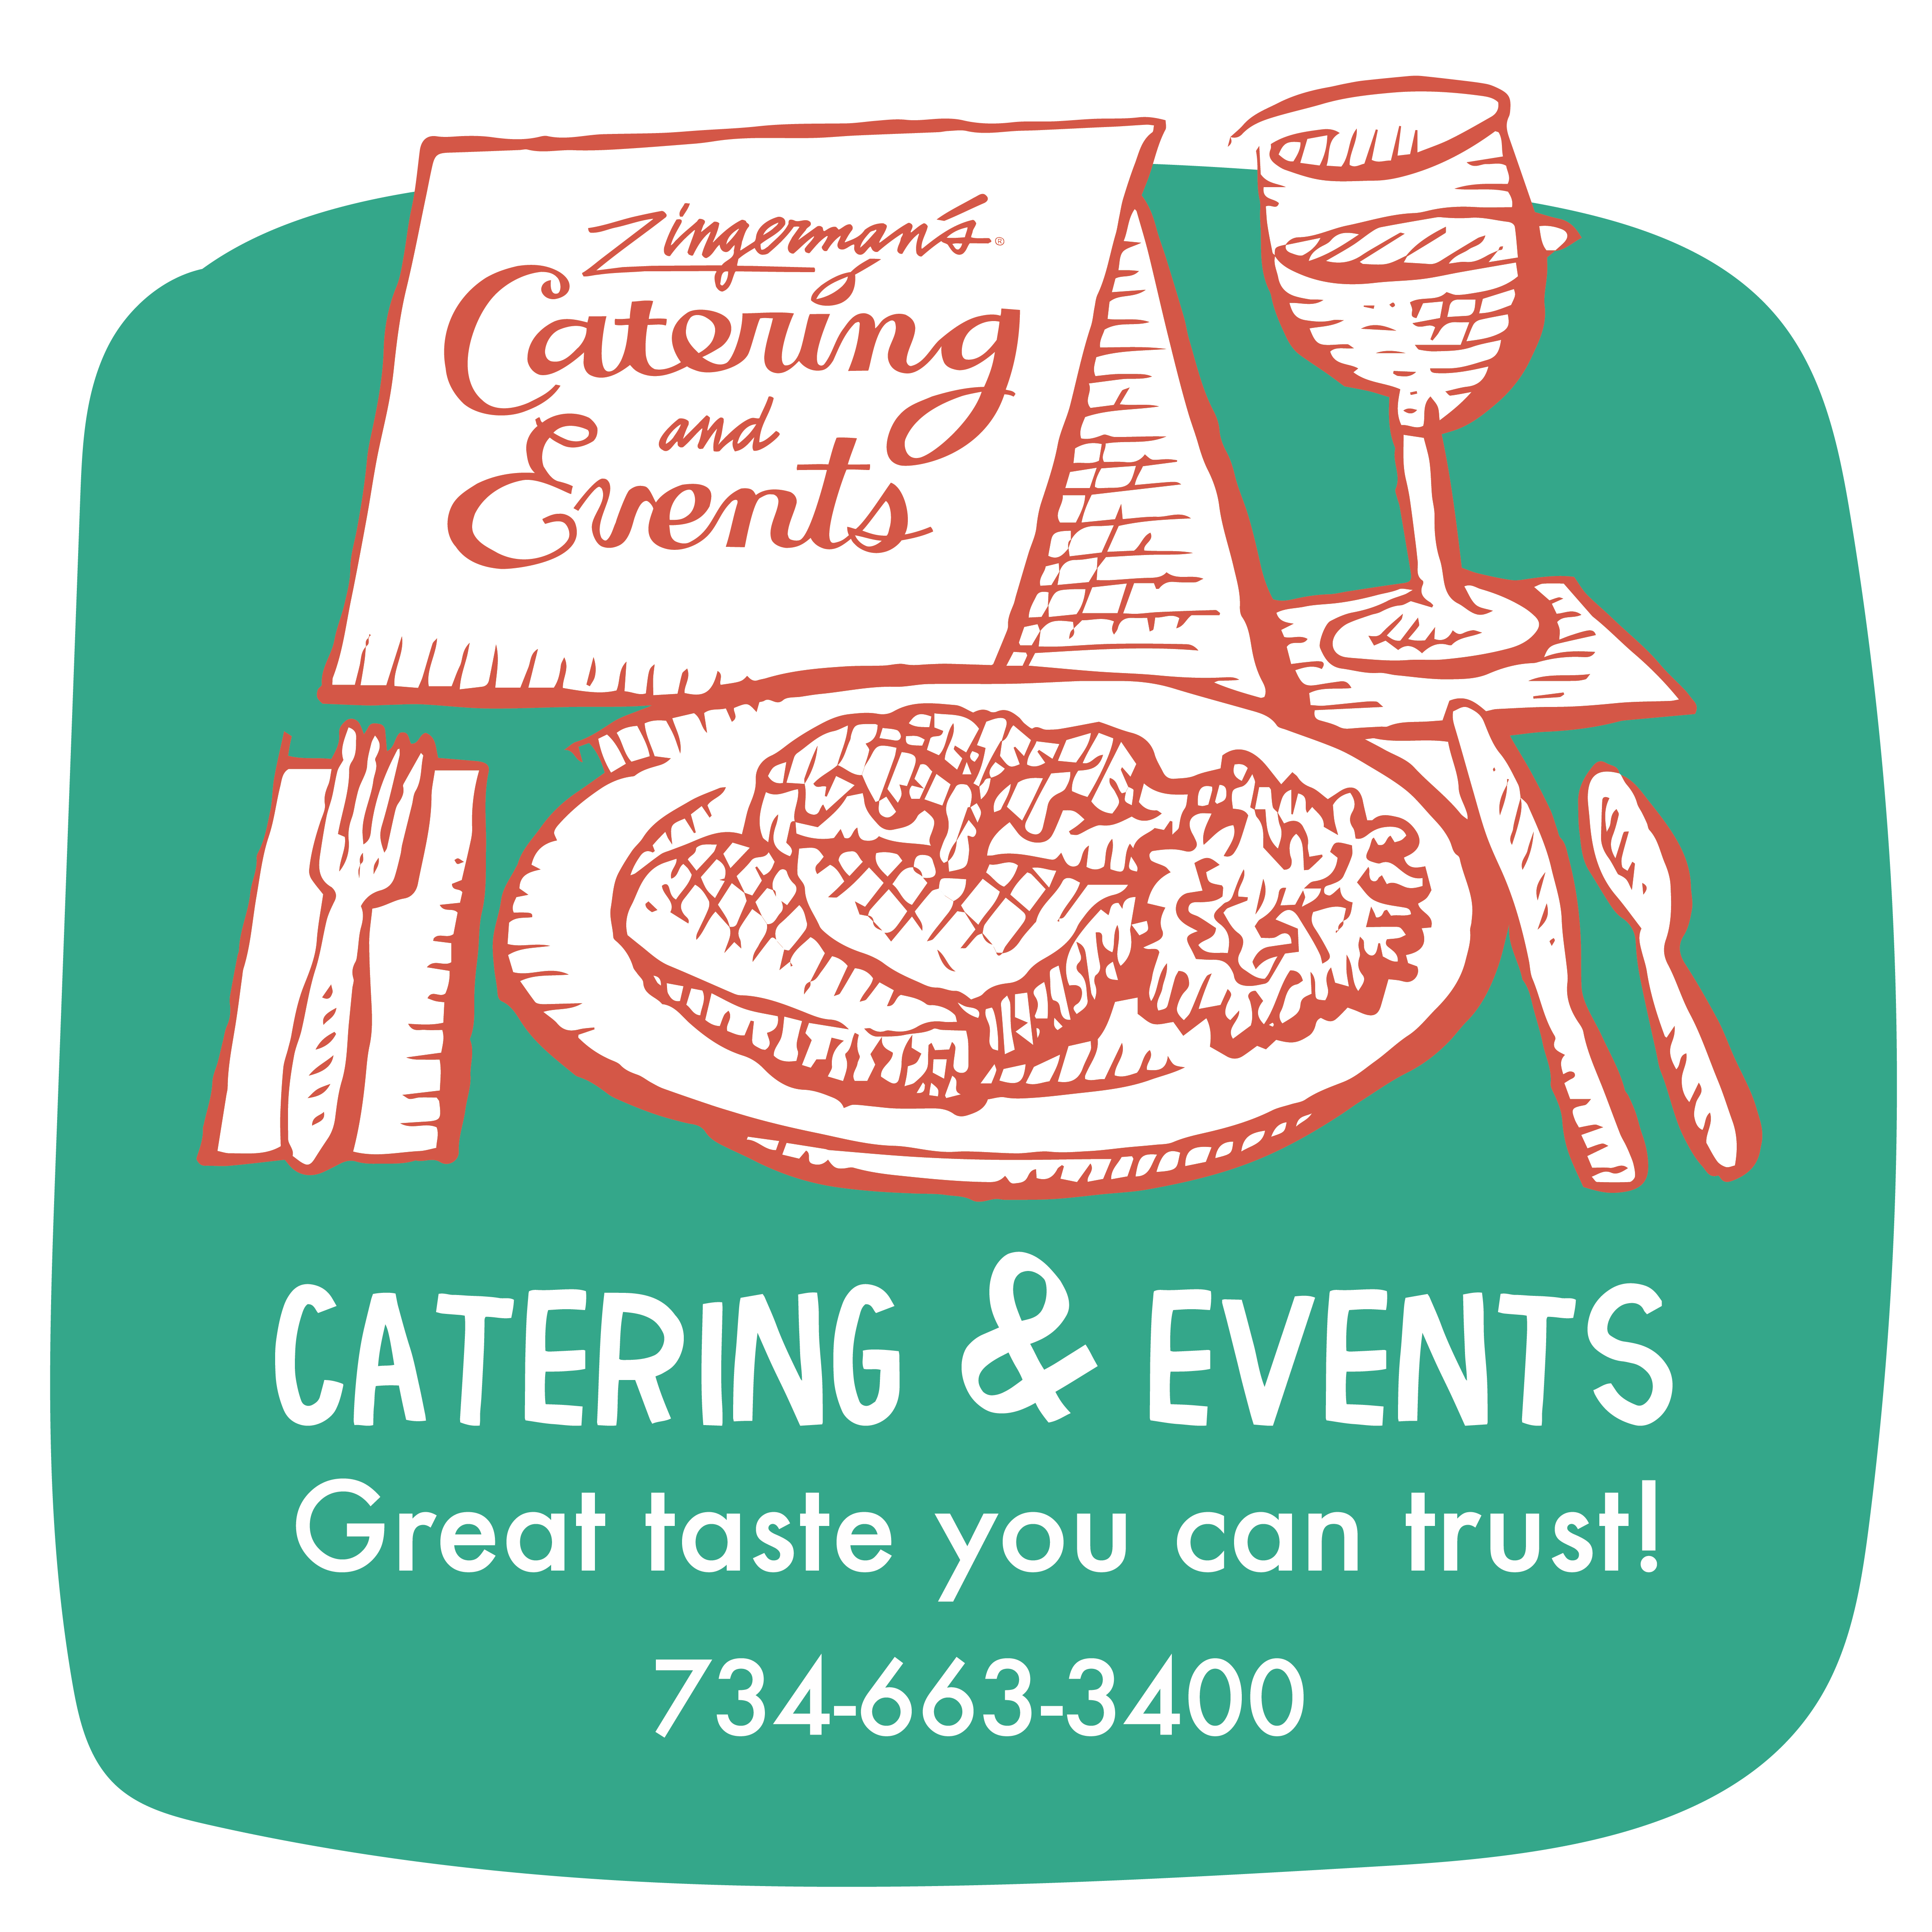 zingerman's catering and events great taste you can trust